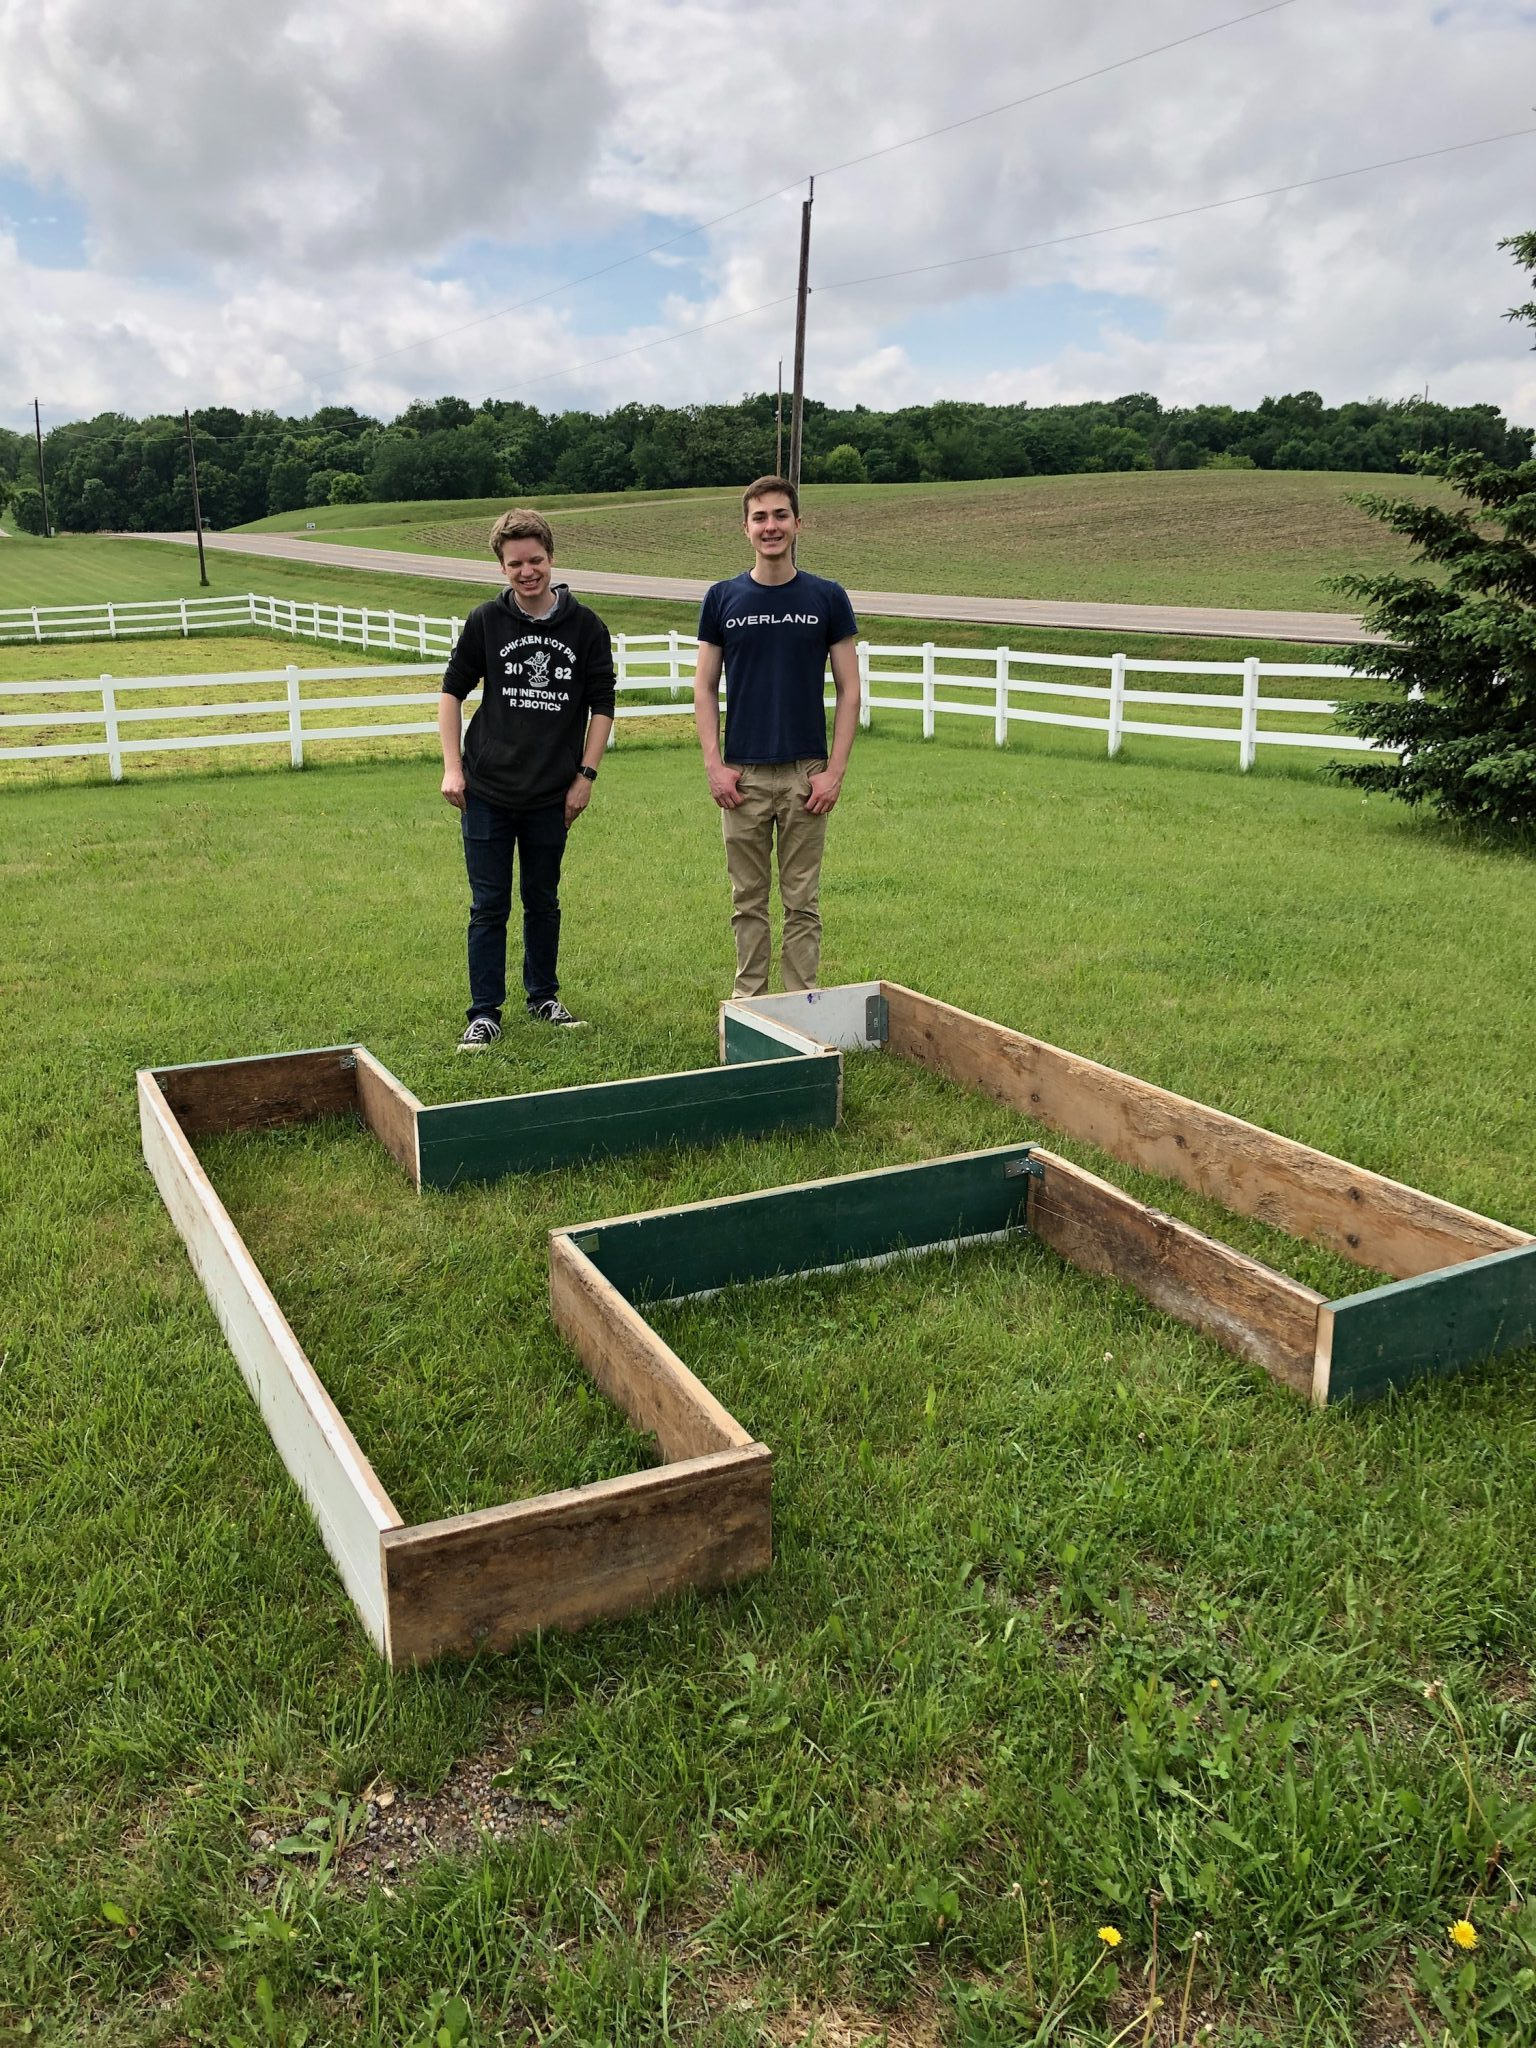 Group Volunteer Opportunities Always Available